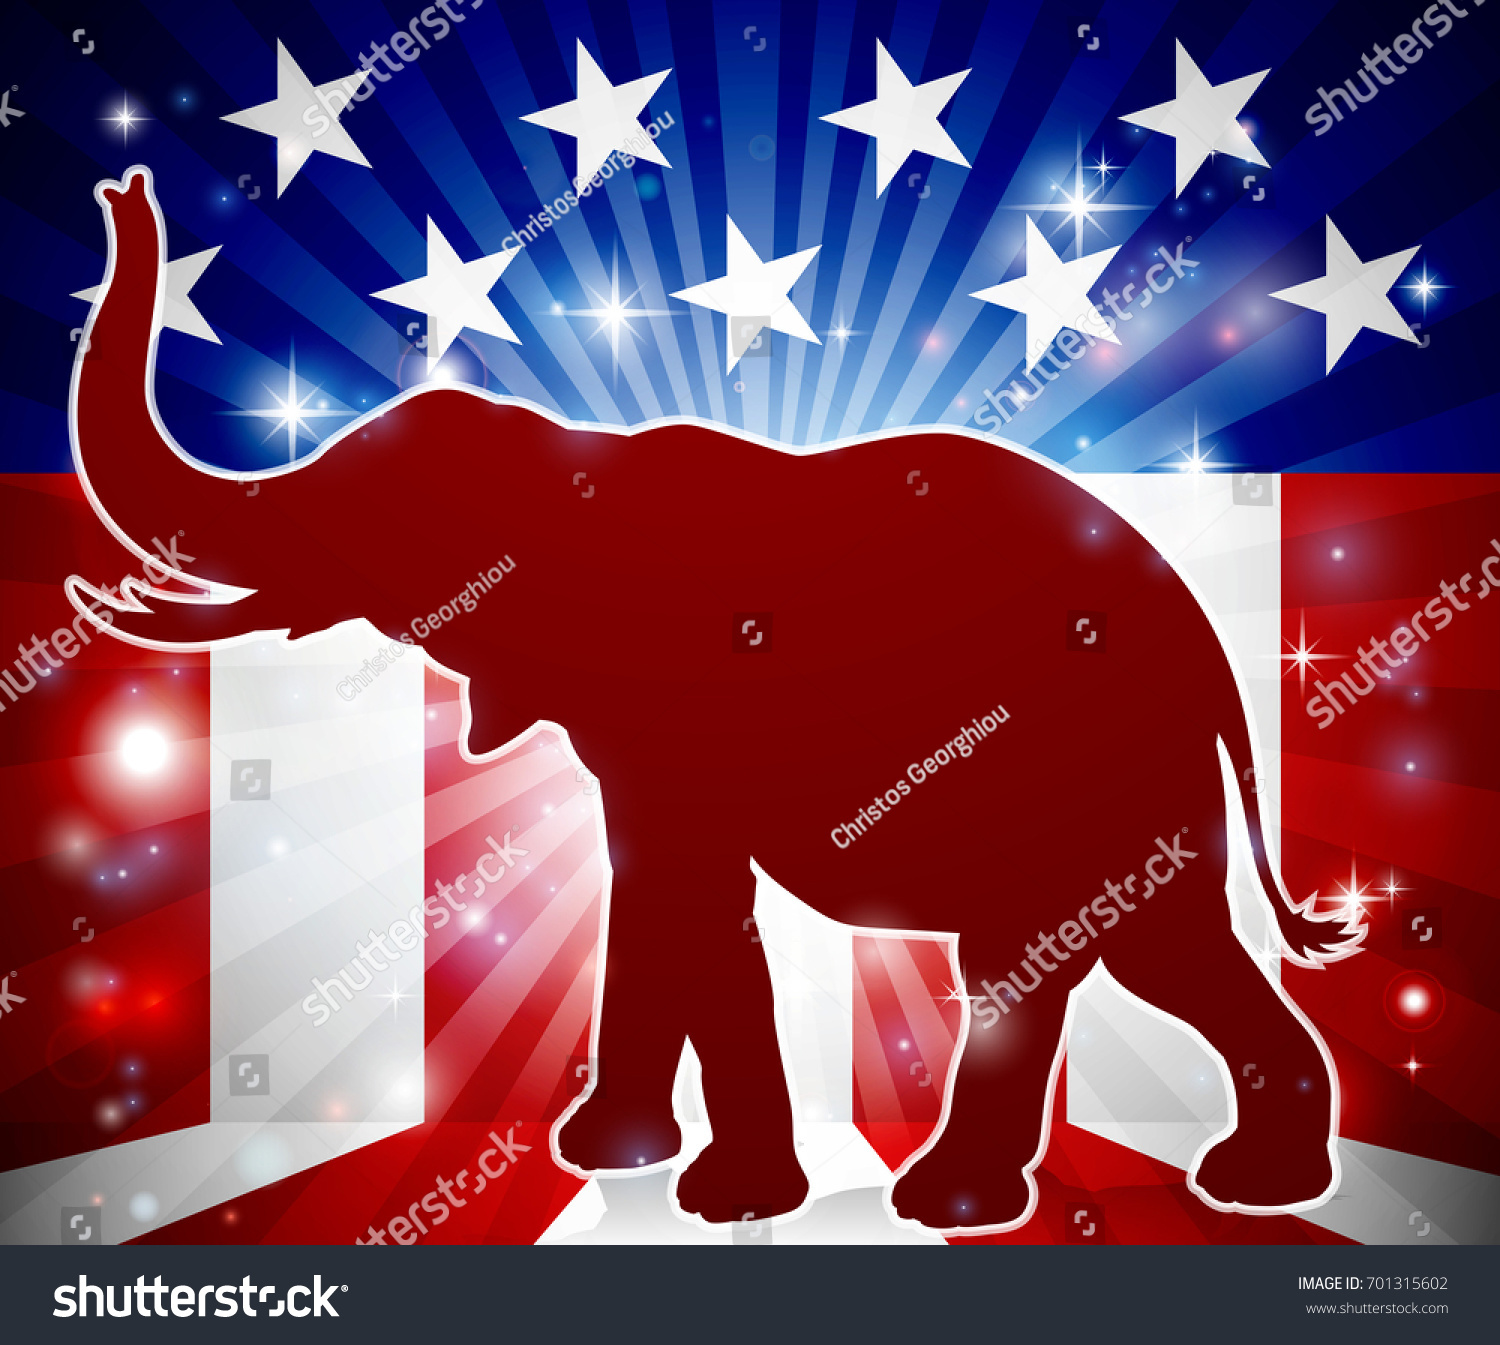 Elephant silhouette trunk air american flag stock illustration elephant silhouette trunk air american flag stock illustration 701315602 shutterstock biocorpaavc Images